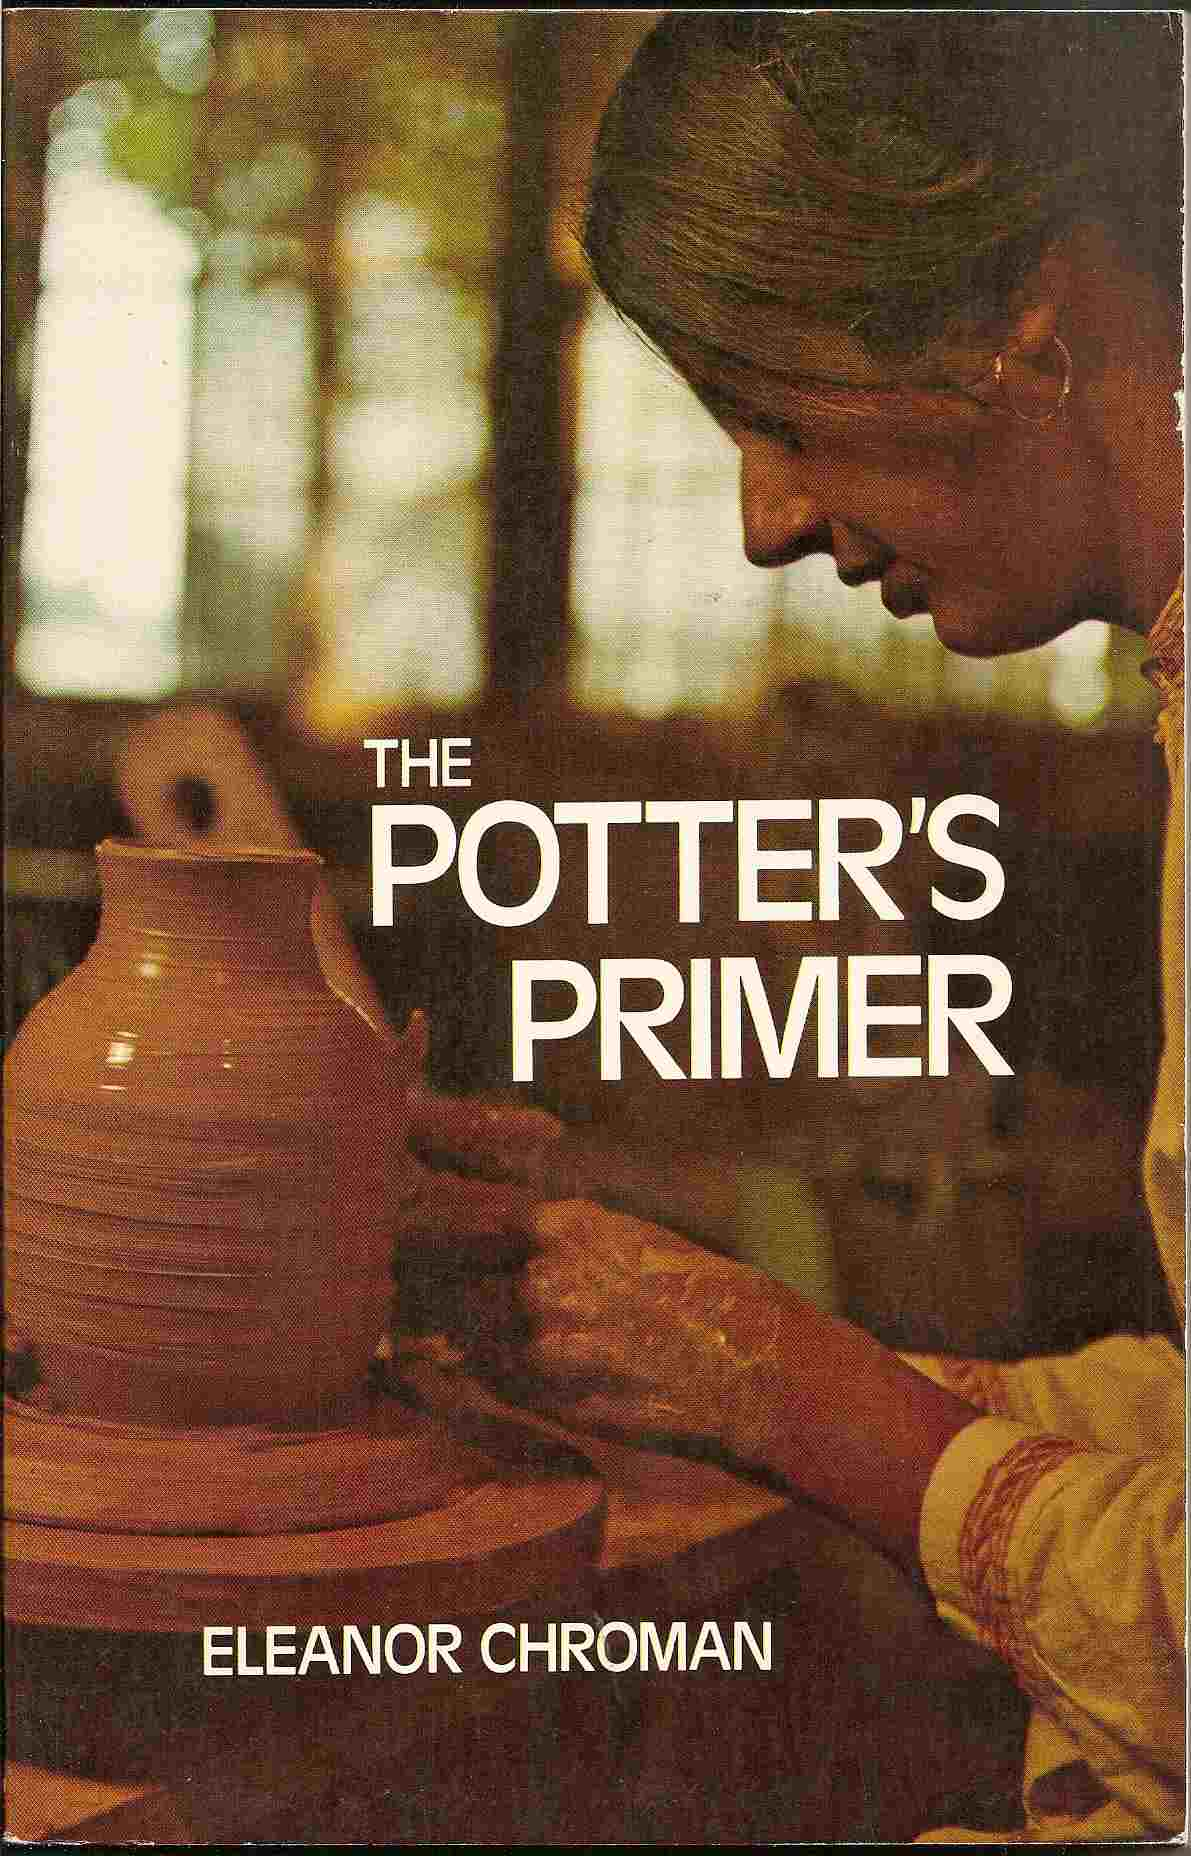 Image for THE POTTER'S PRIMER